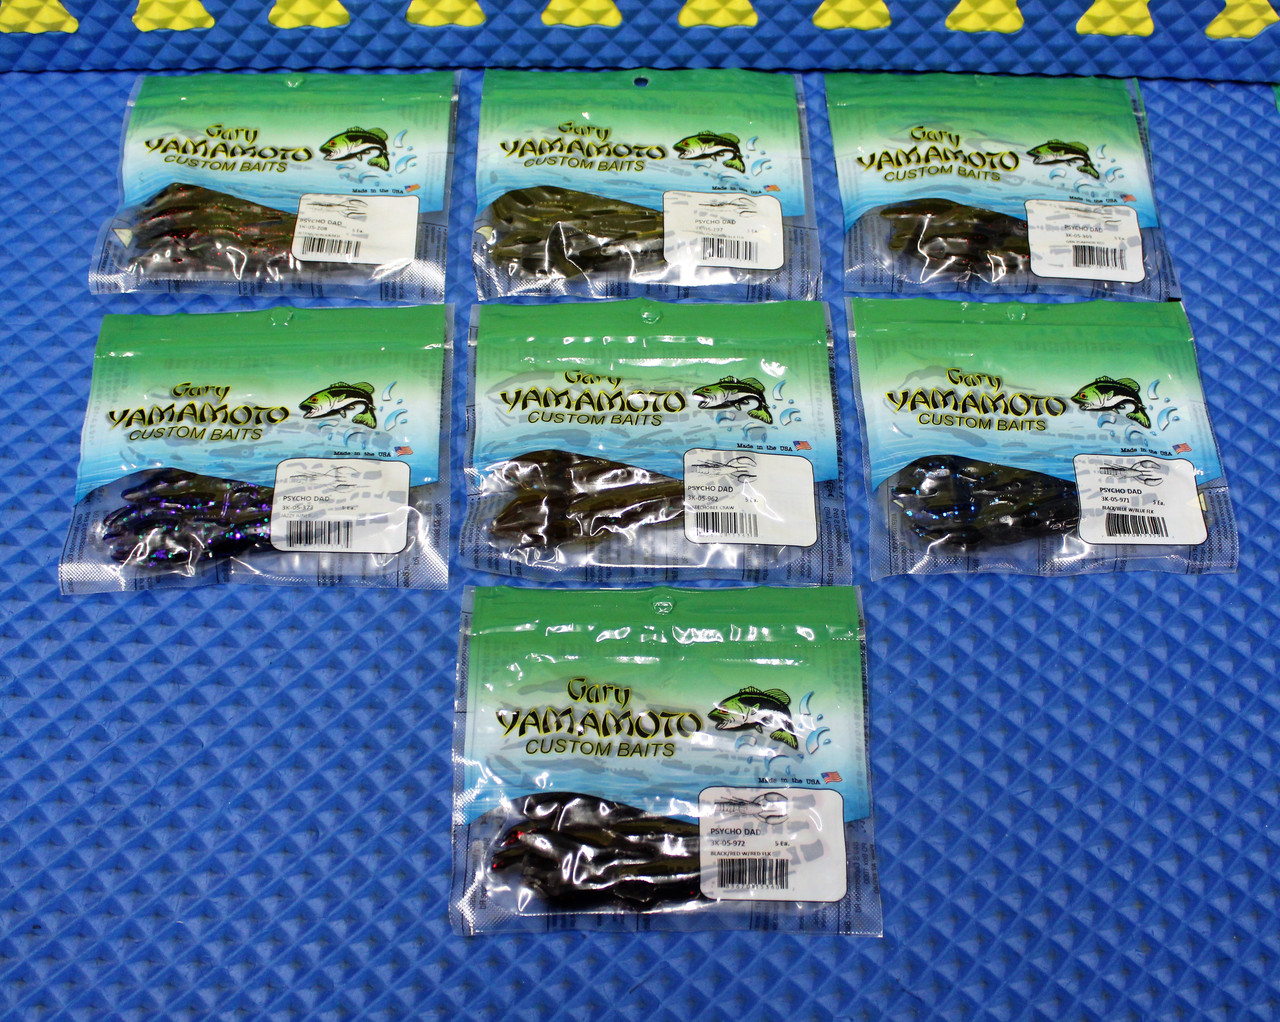 Gary Yamamoto Custom Baits 5 Pack Psycho Dad 3K-05 Series CHOOSE YOUR COLOR!